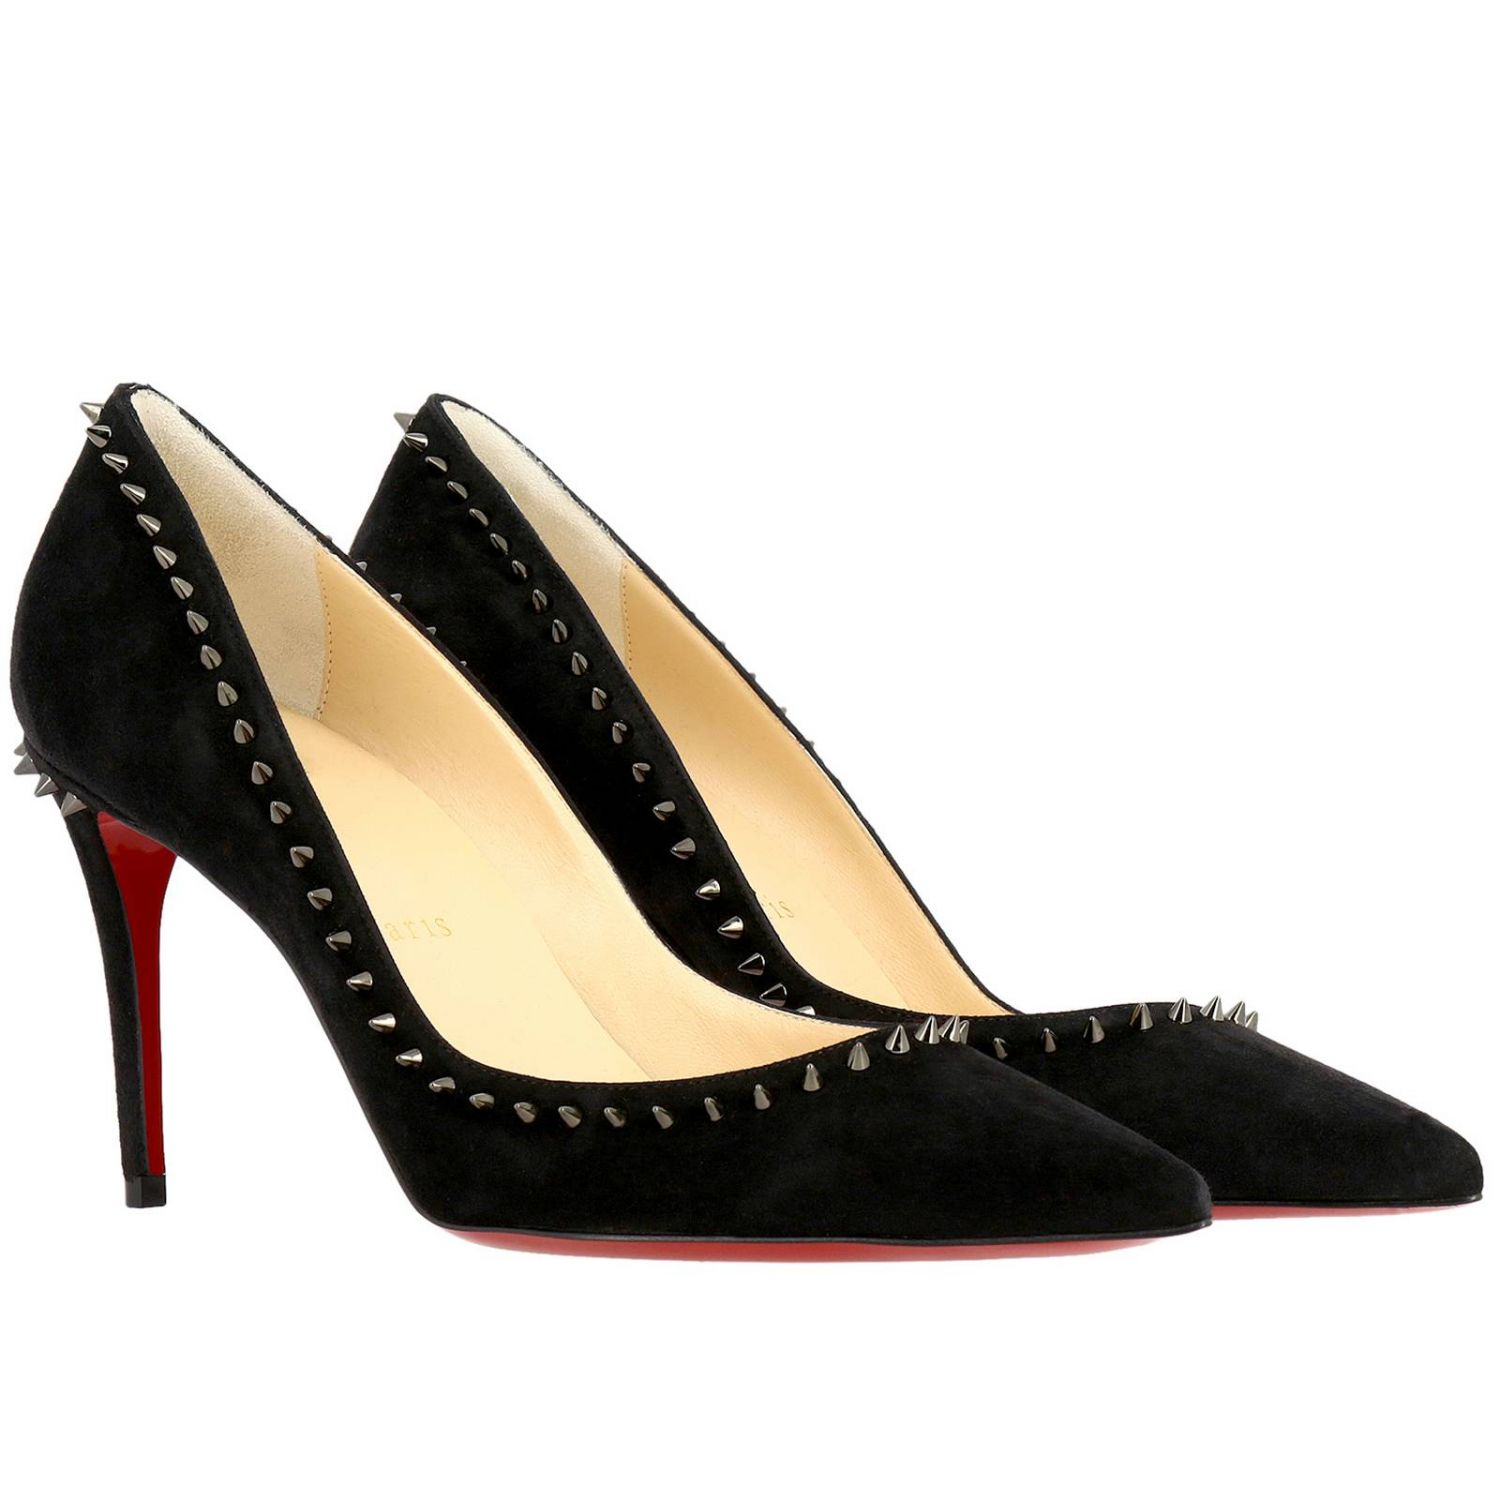 Pumps Christian Louboutin: Angelina Christian Louboutin pumps in suede with studs black 2